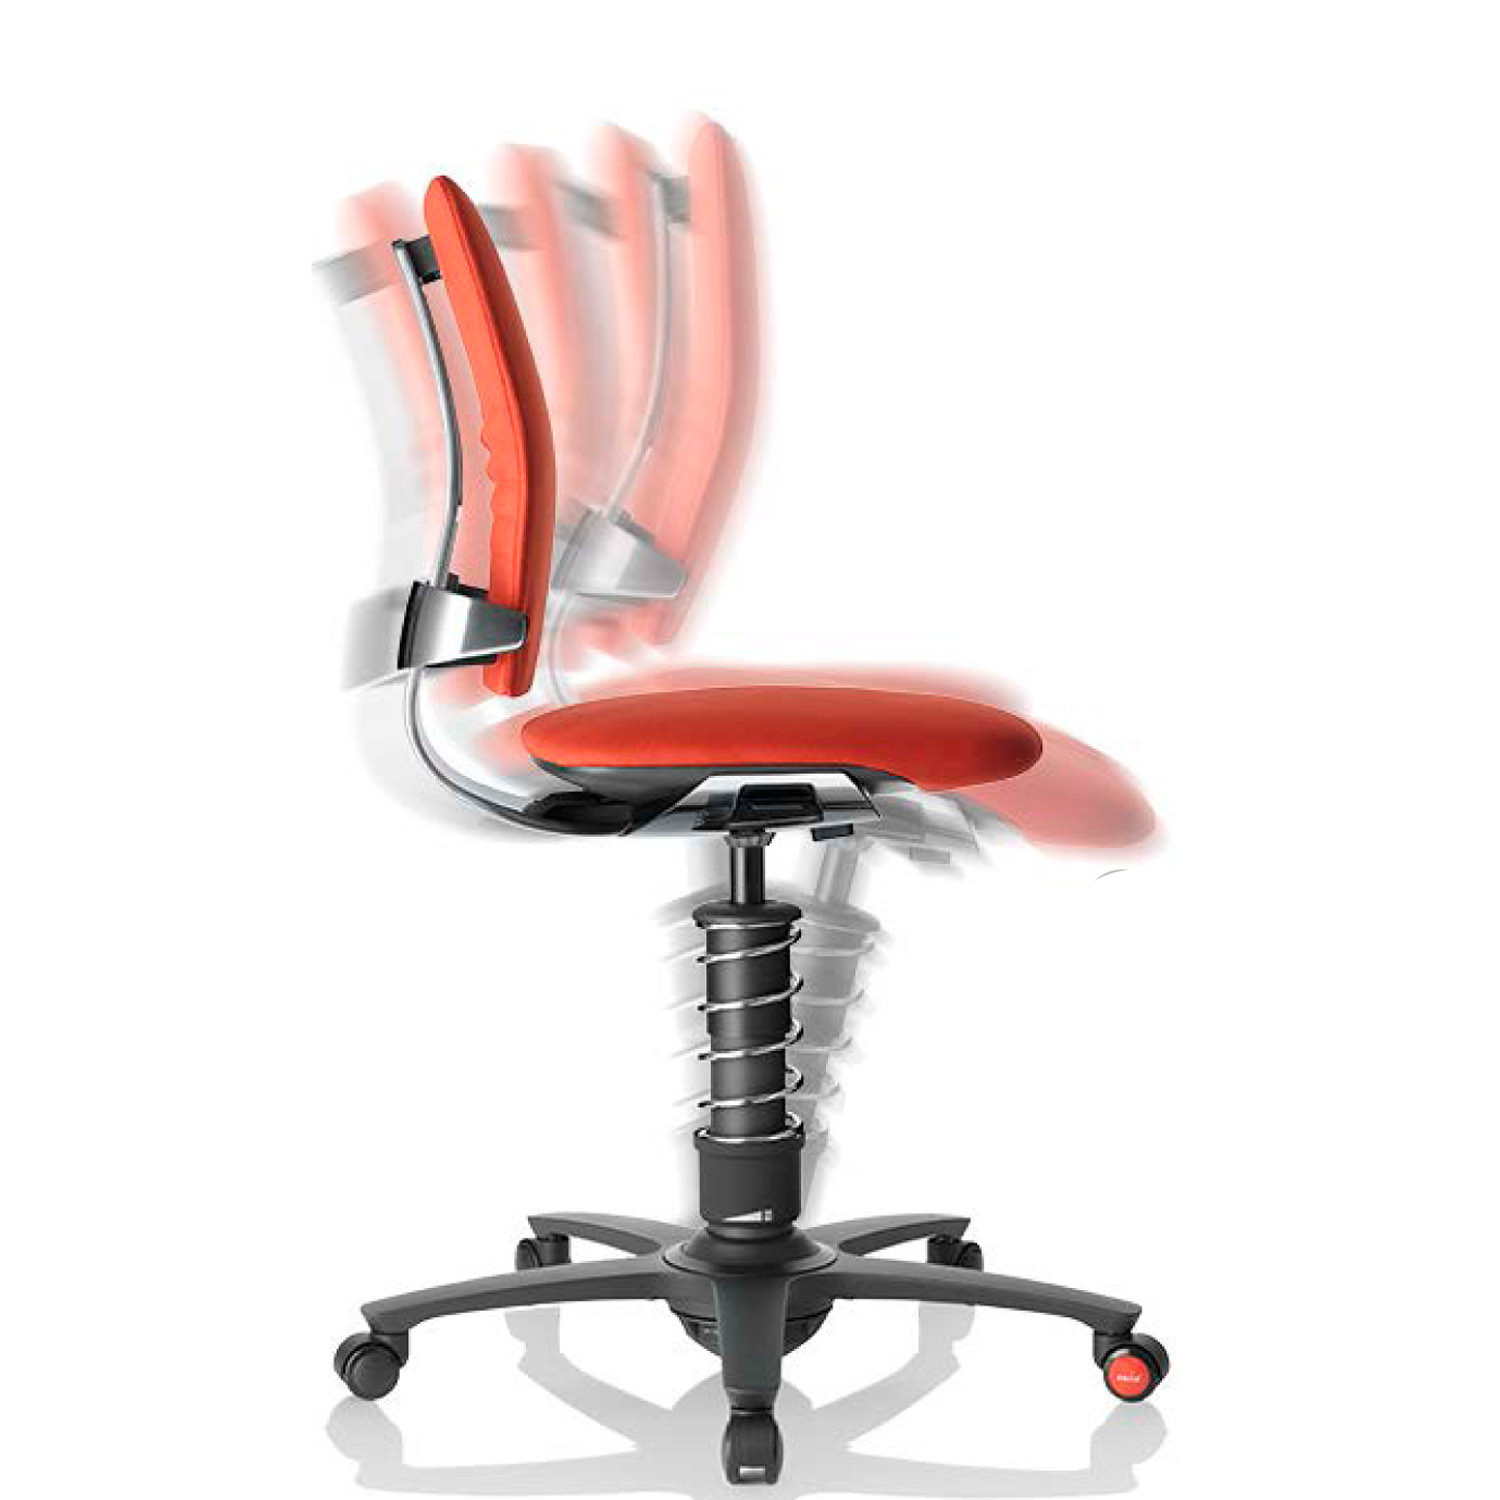 3Dee Chair 360° Pivot Movement